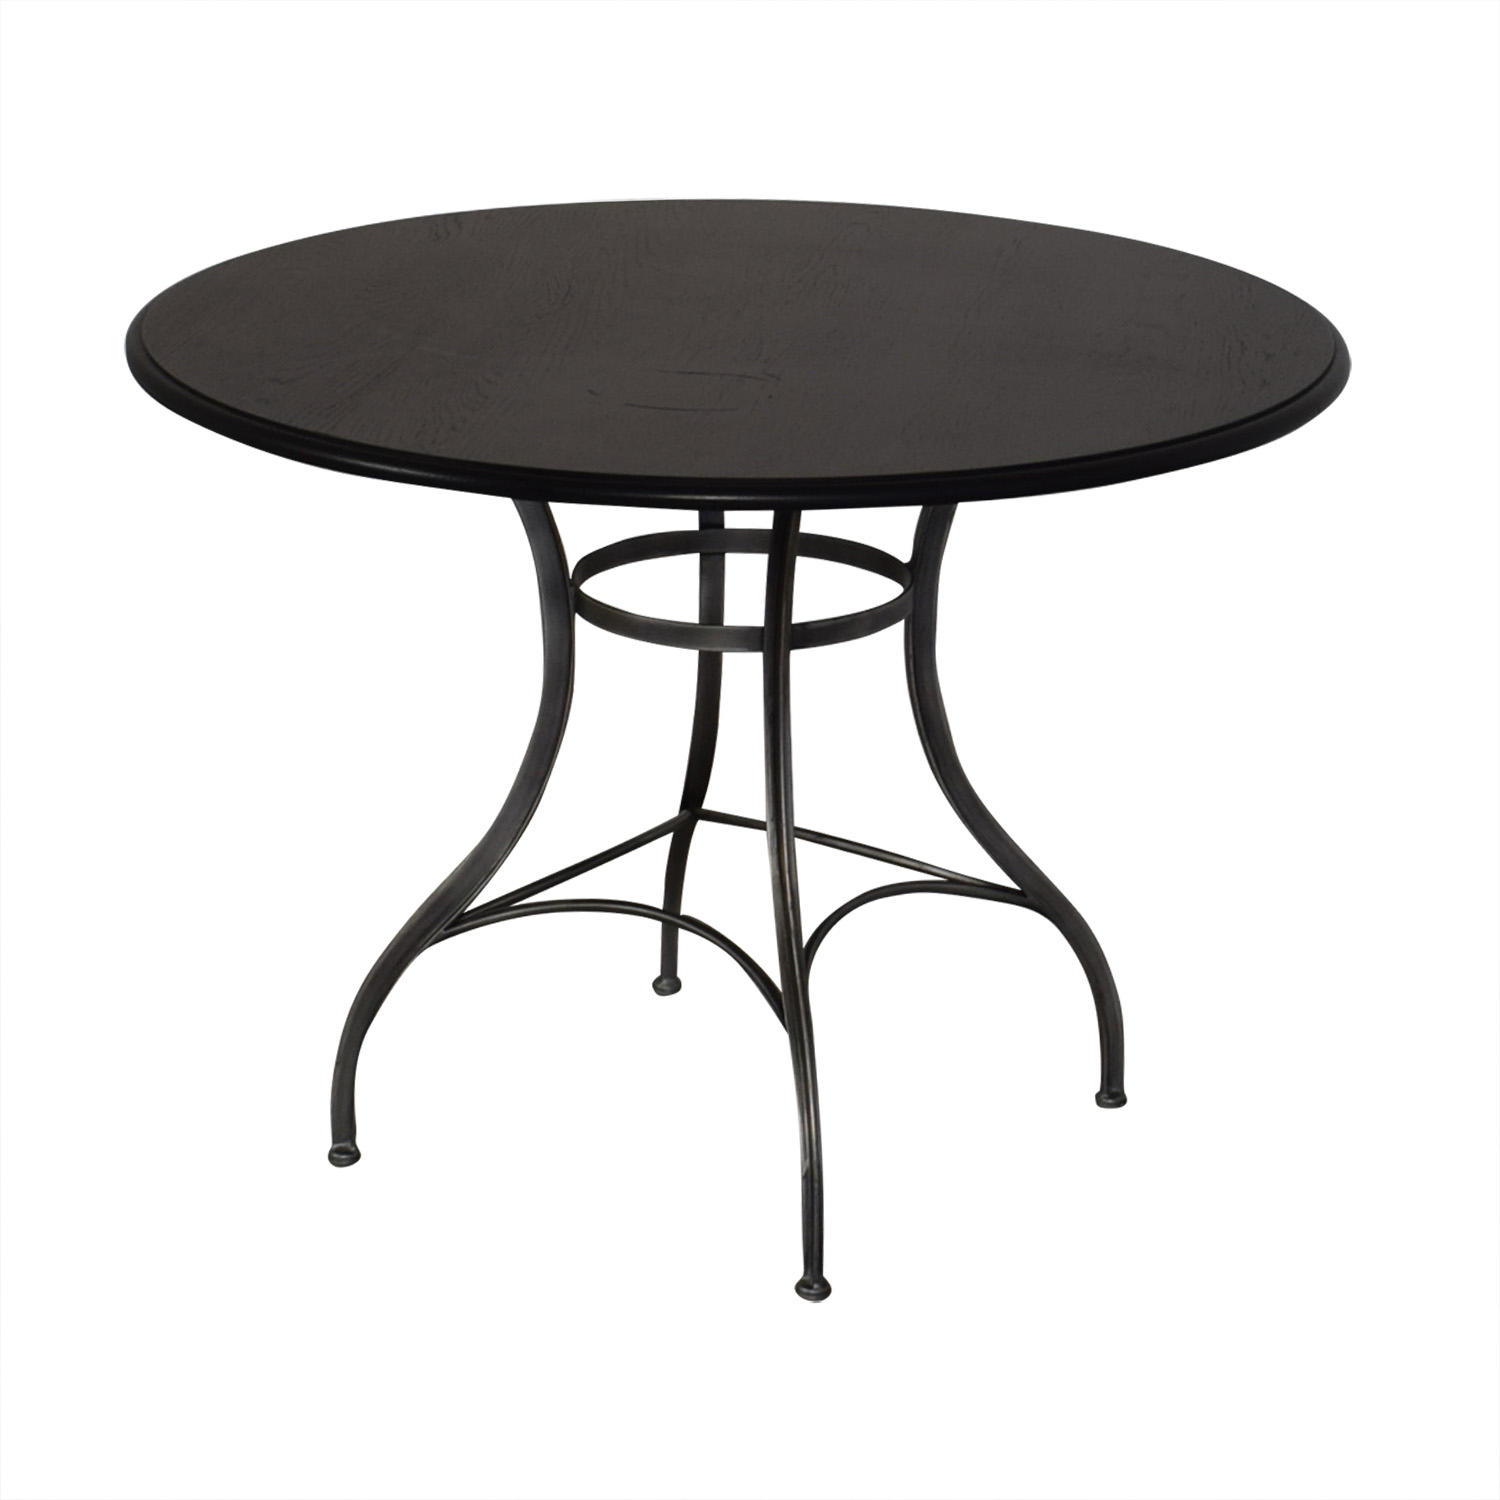 Ethan Allen Ethan Allen Round Dining Table nj